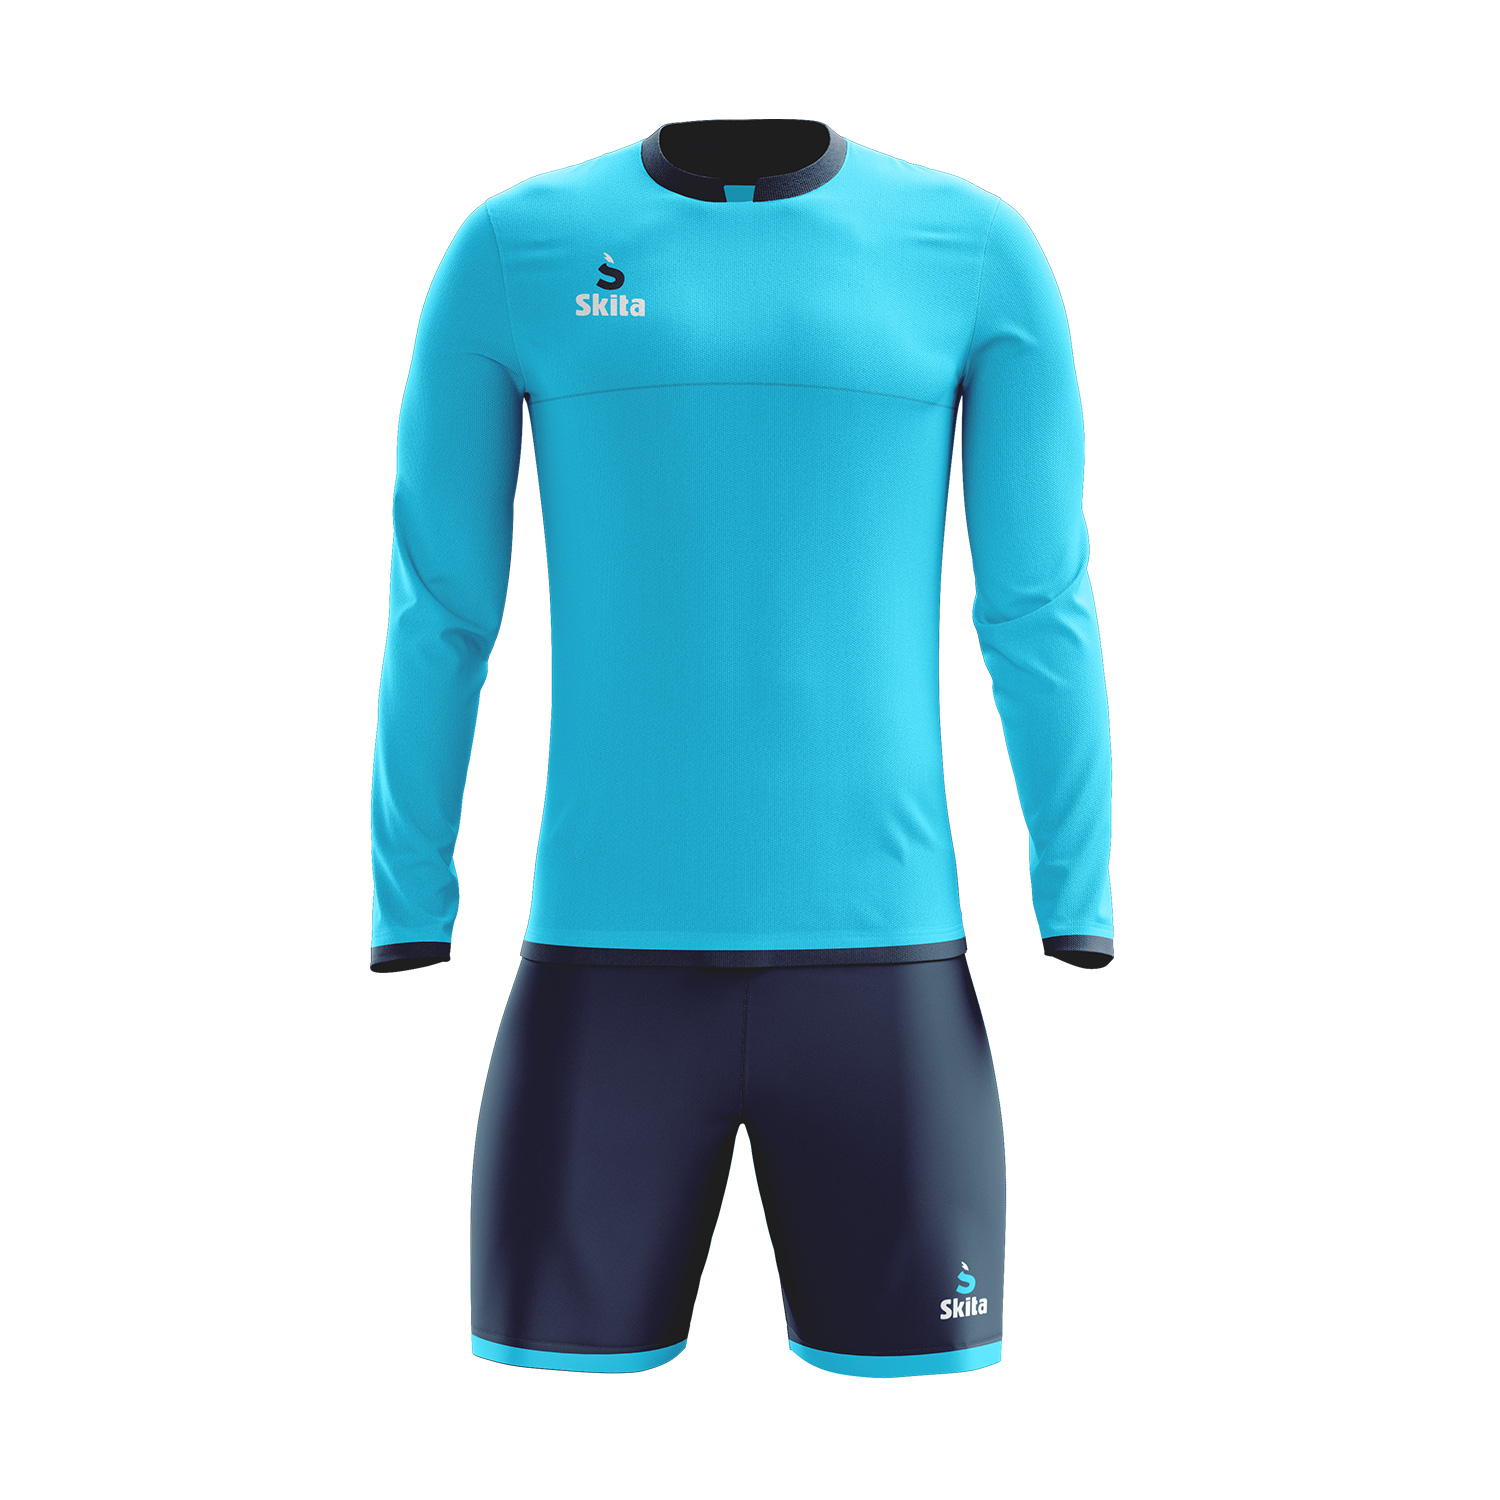 Maillot short Estoril (bleu ciel/bleu nuit)